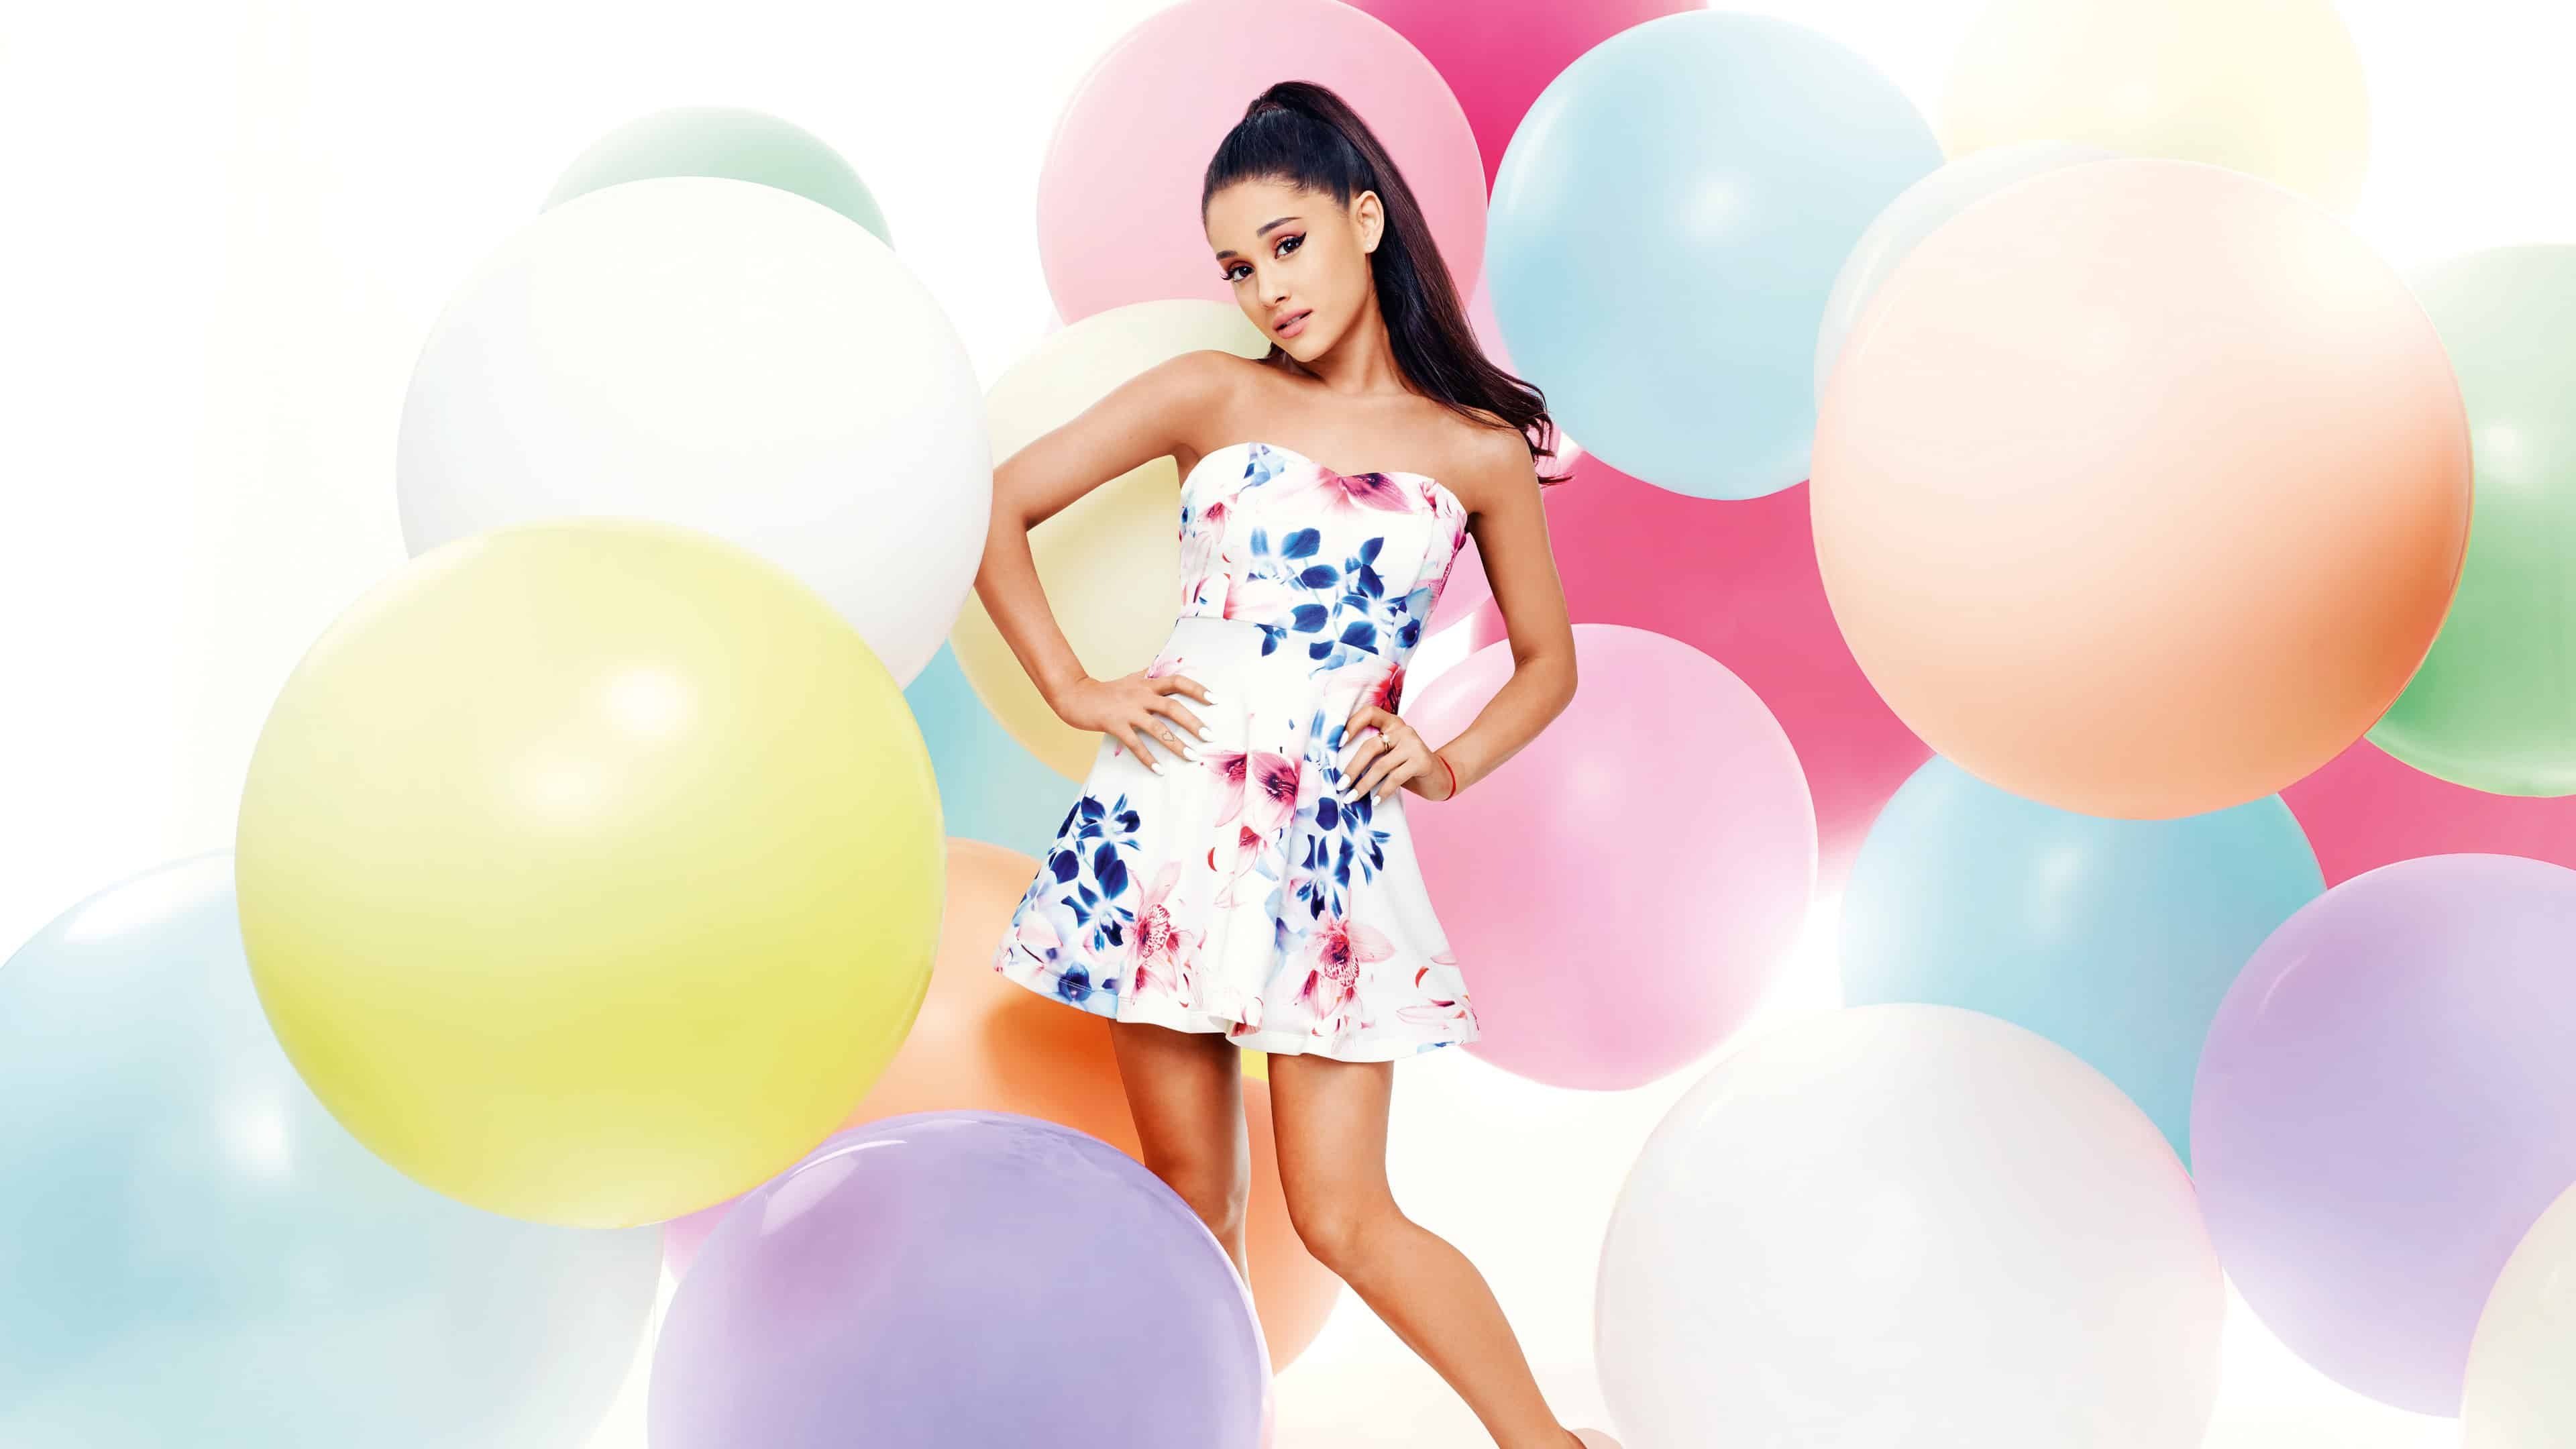 ariana grande colorful photoshoot uhd 4k wallpaper